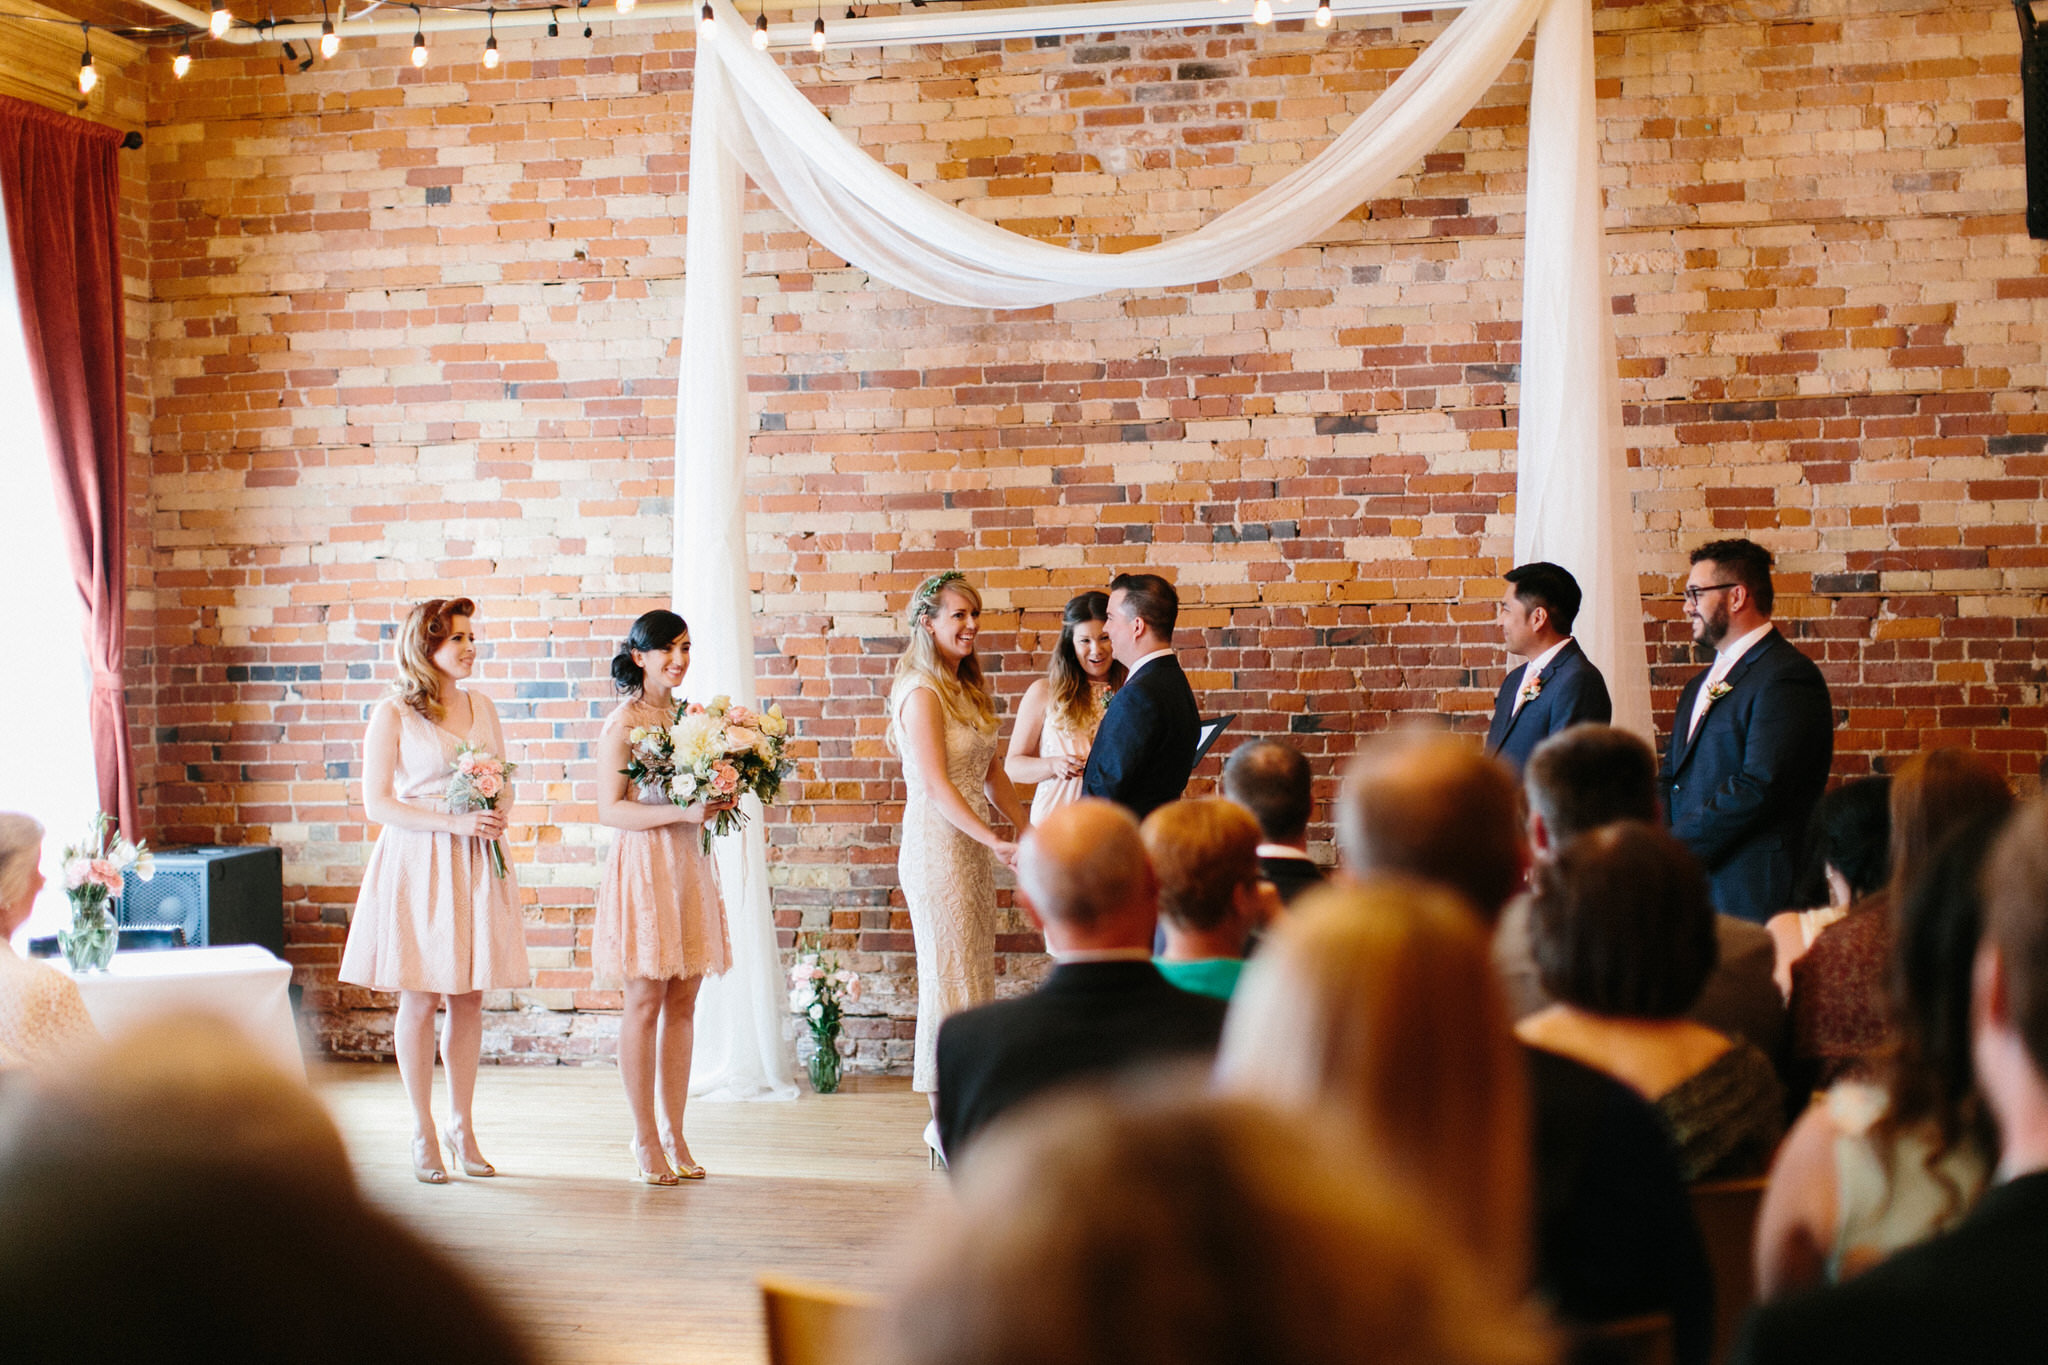 toronto wedding photographer, gladstone hotel, gladstone hotel ceremony, blush wedding, coriander girl flowers